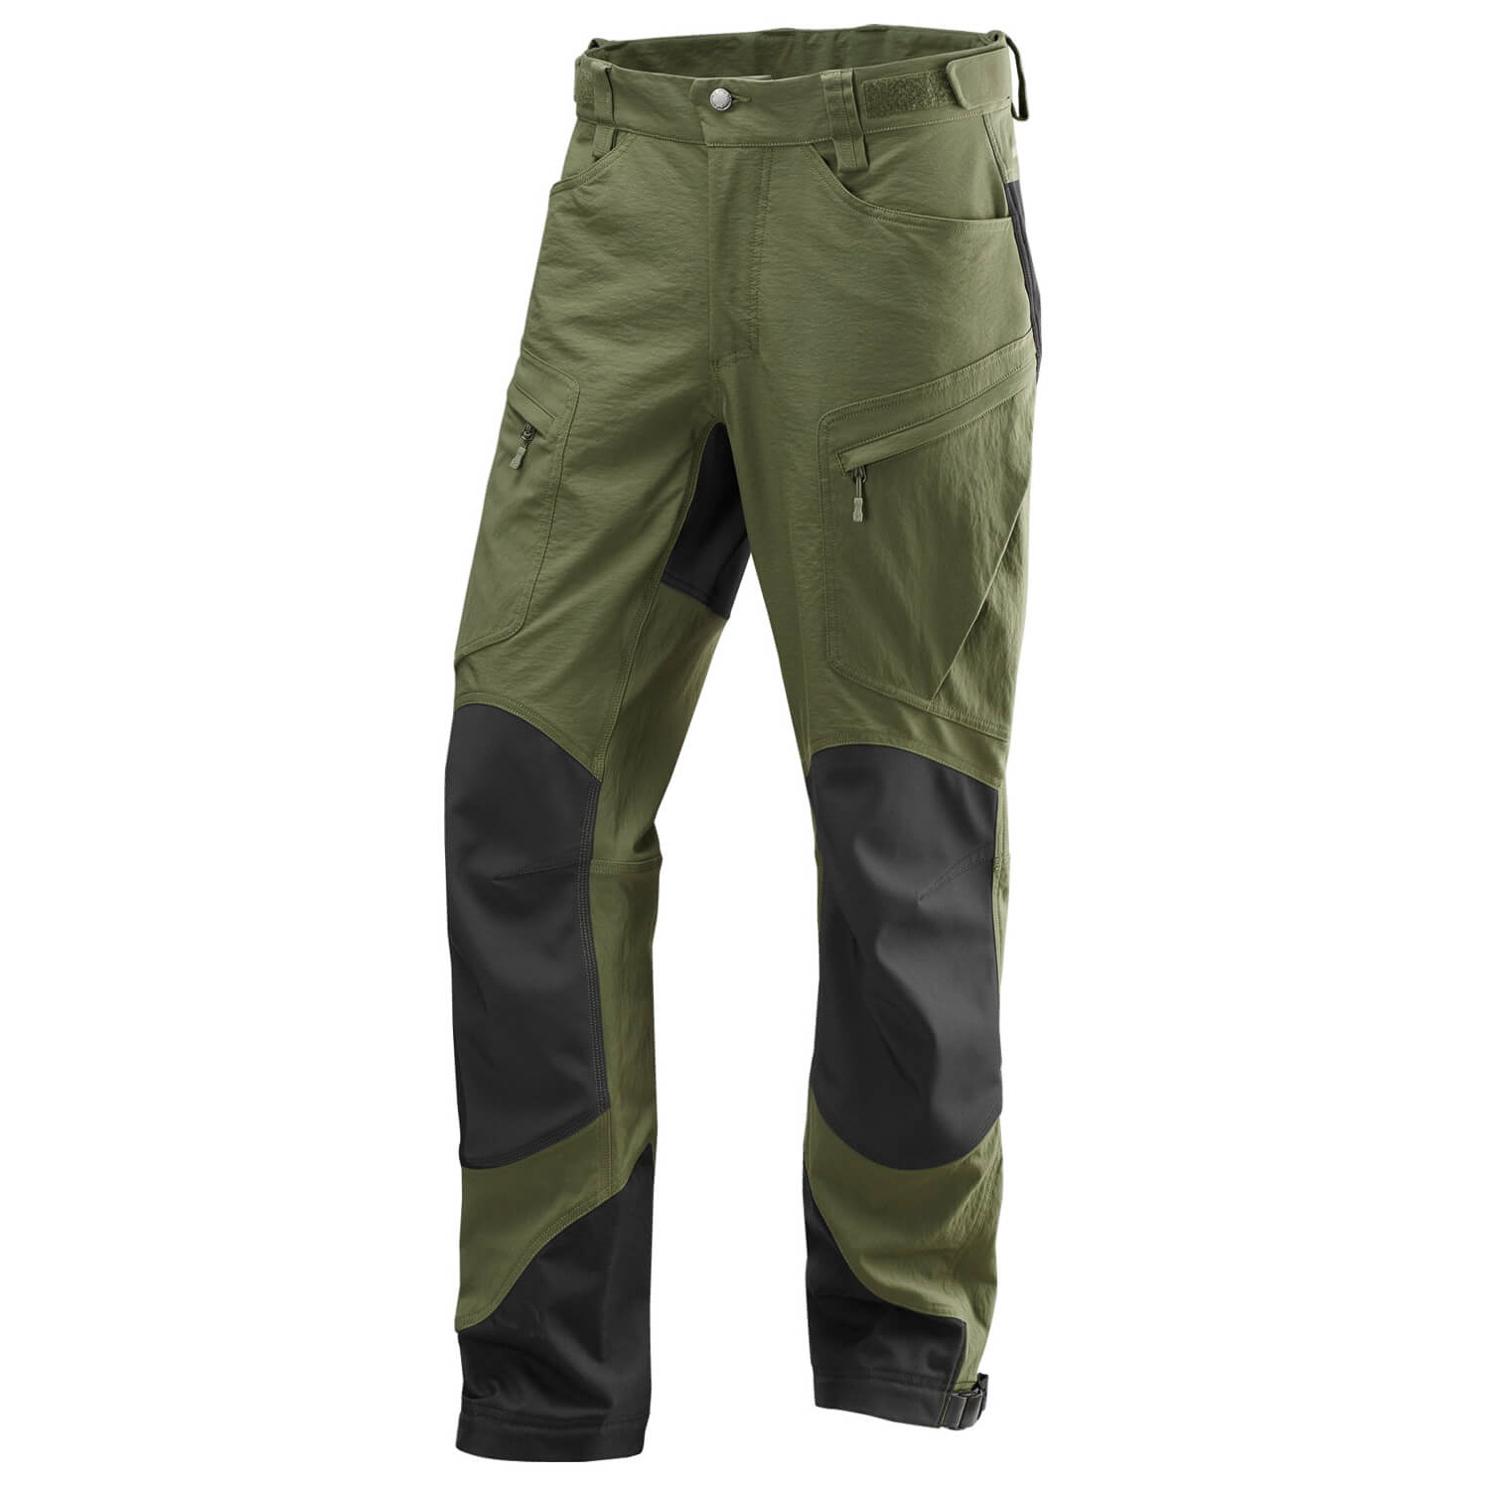 Haglöfs Rugged Ii Mountain Pant Softs Trousers